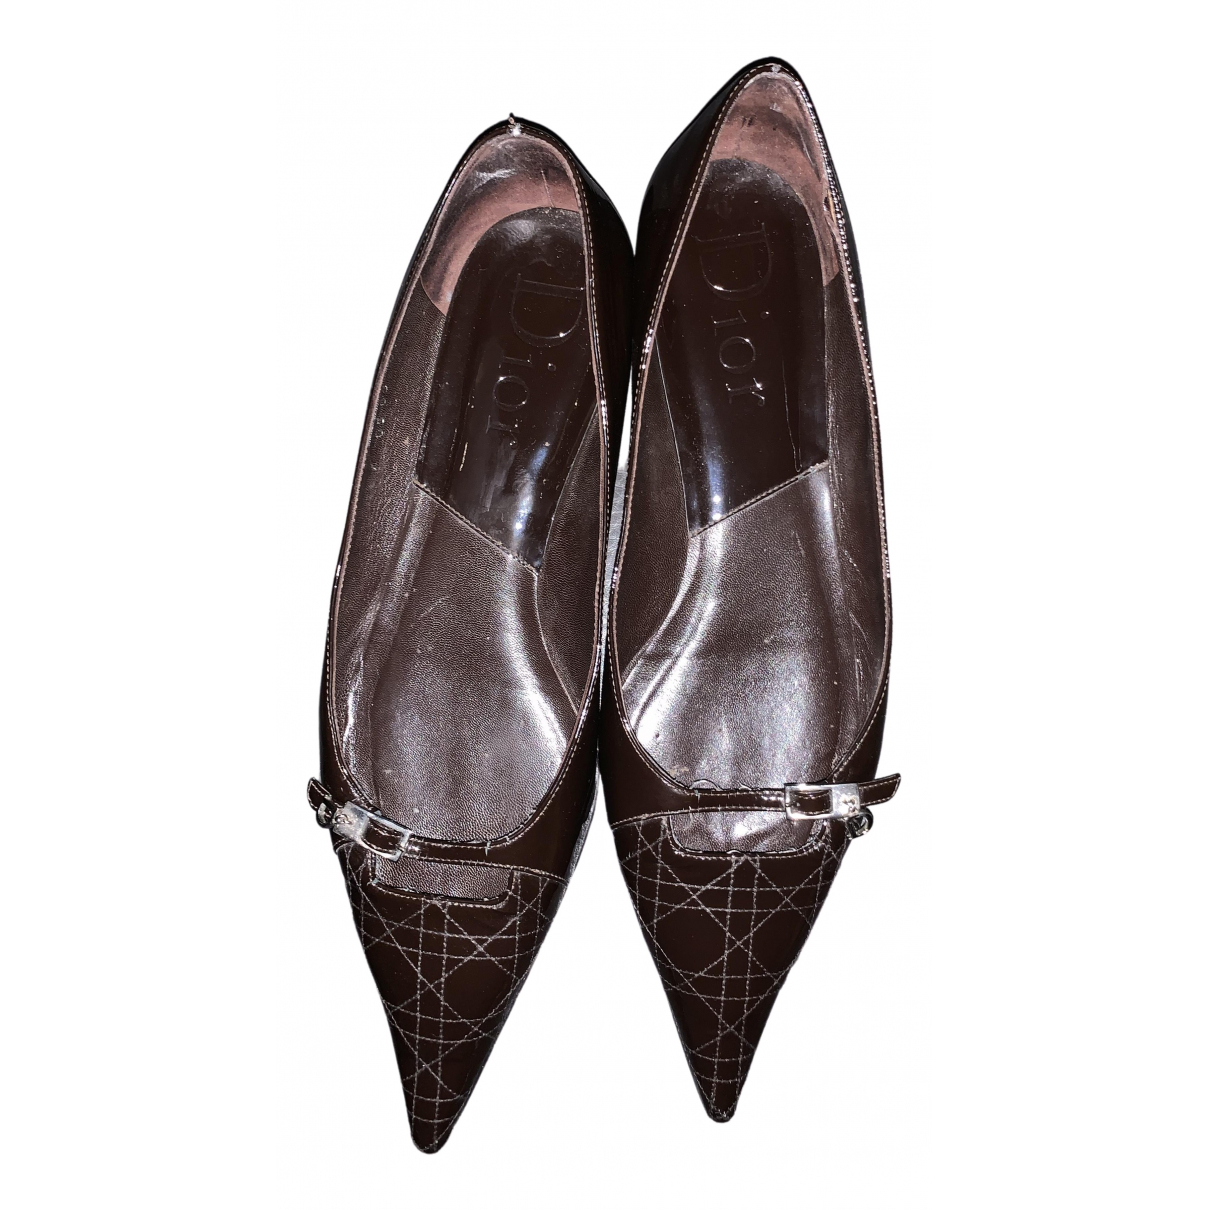 Dior \N Brown Patent leather Ballet flats for Women 40 EU